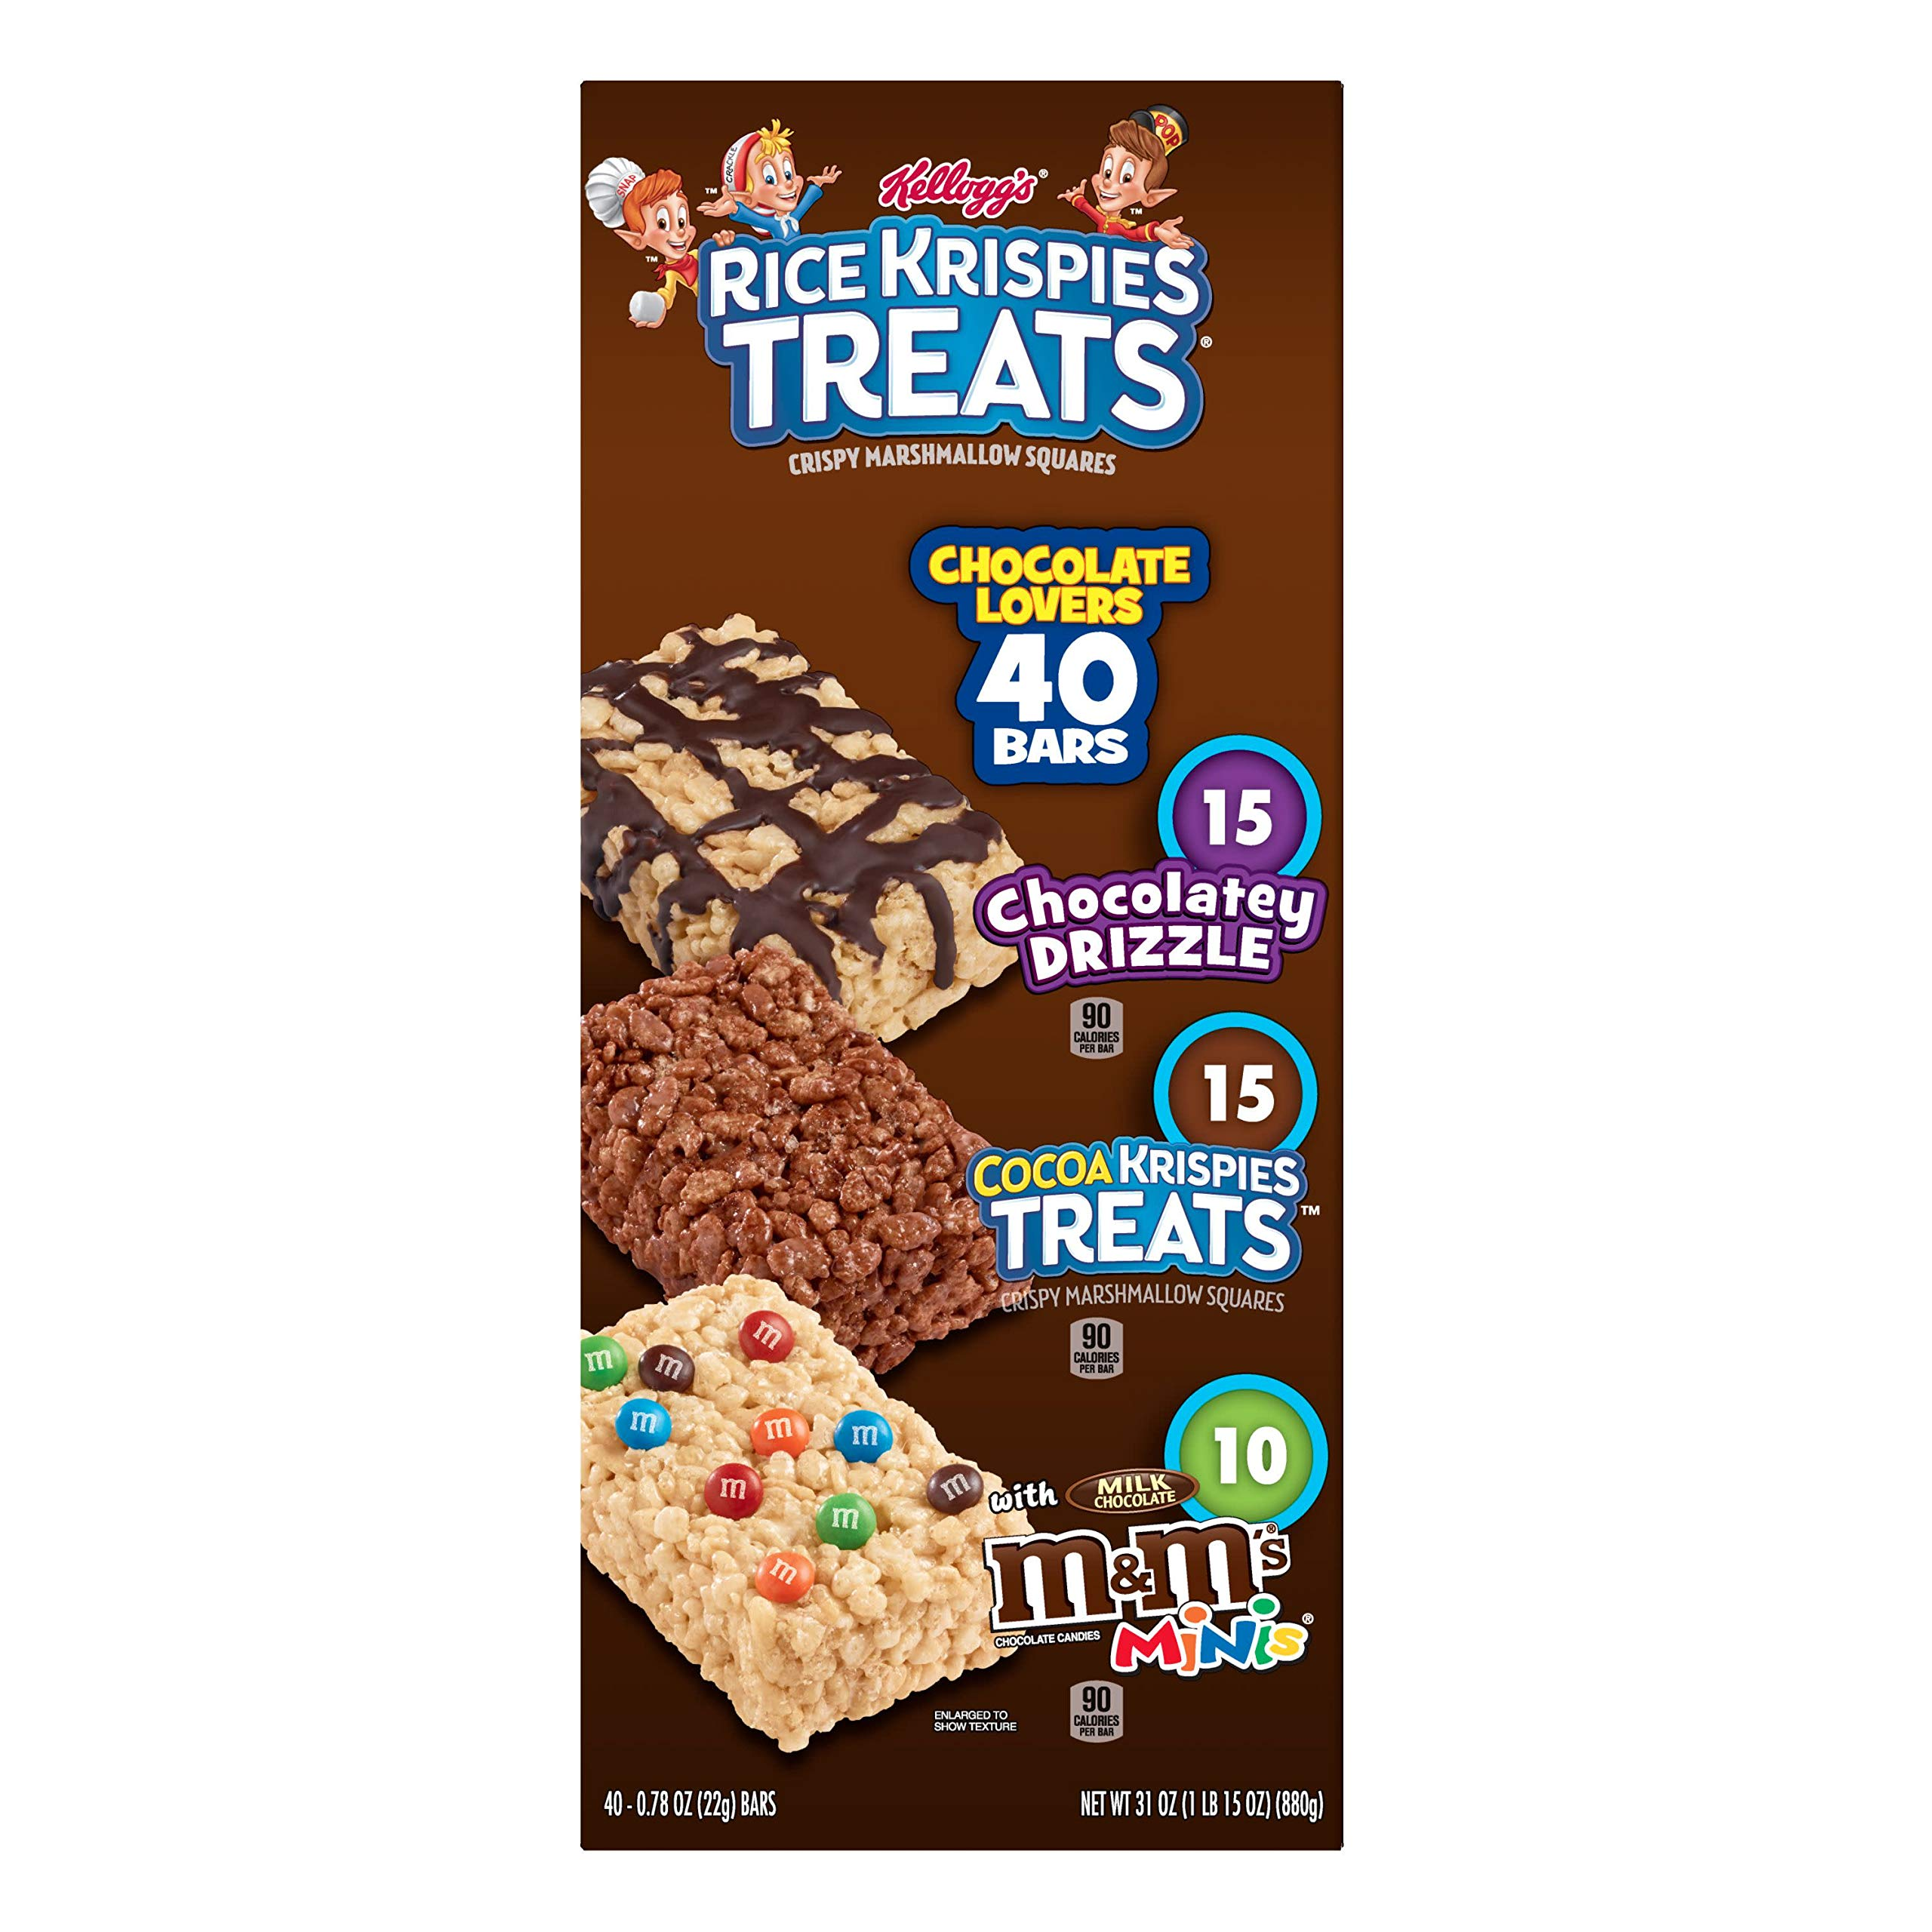 Kellogg's Rice Krispies Treats, Crispy Marshmallow Squares, Chocolate Lovers Variety Pack, Single Serve, 0.78 oz Bars (40 Count) by Rice Krispies (Image #6)